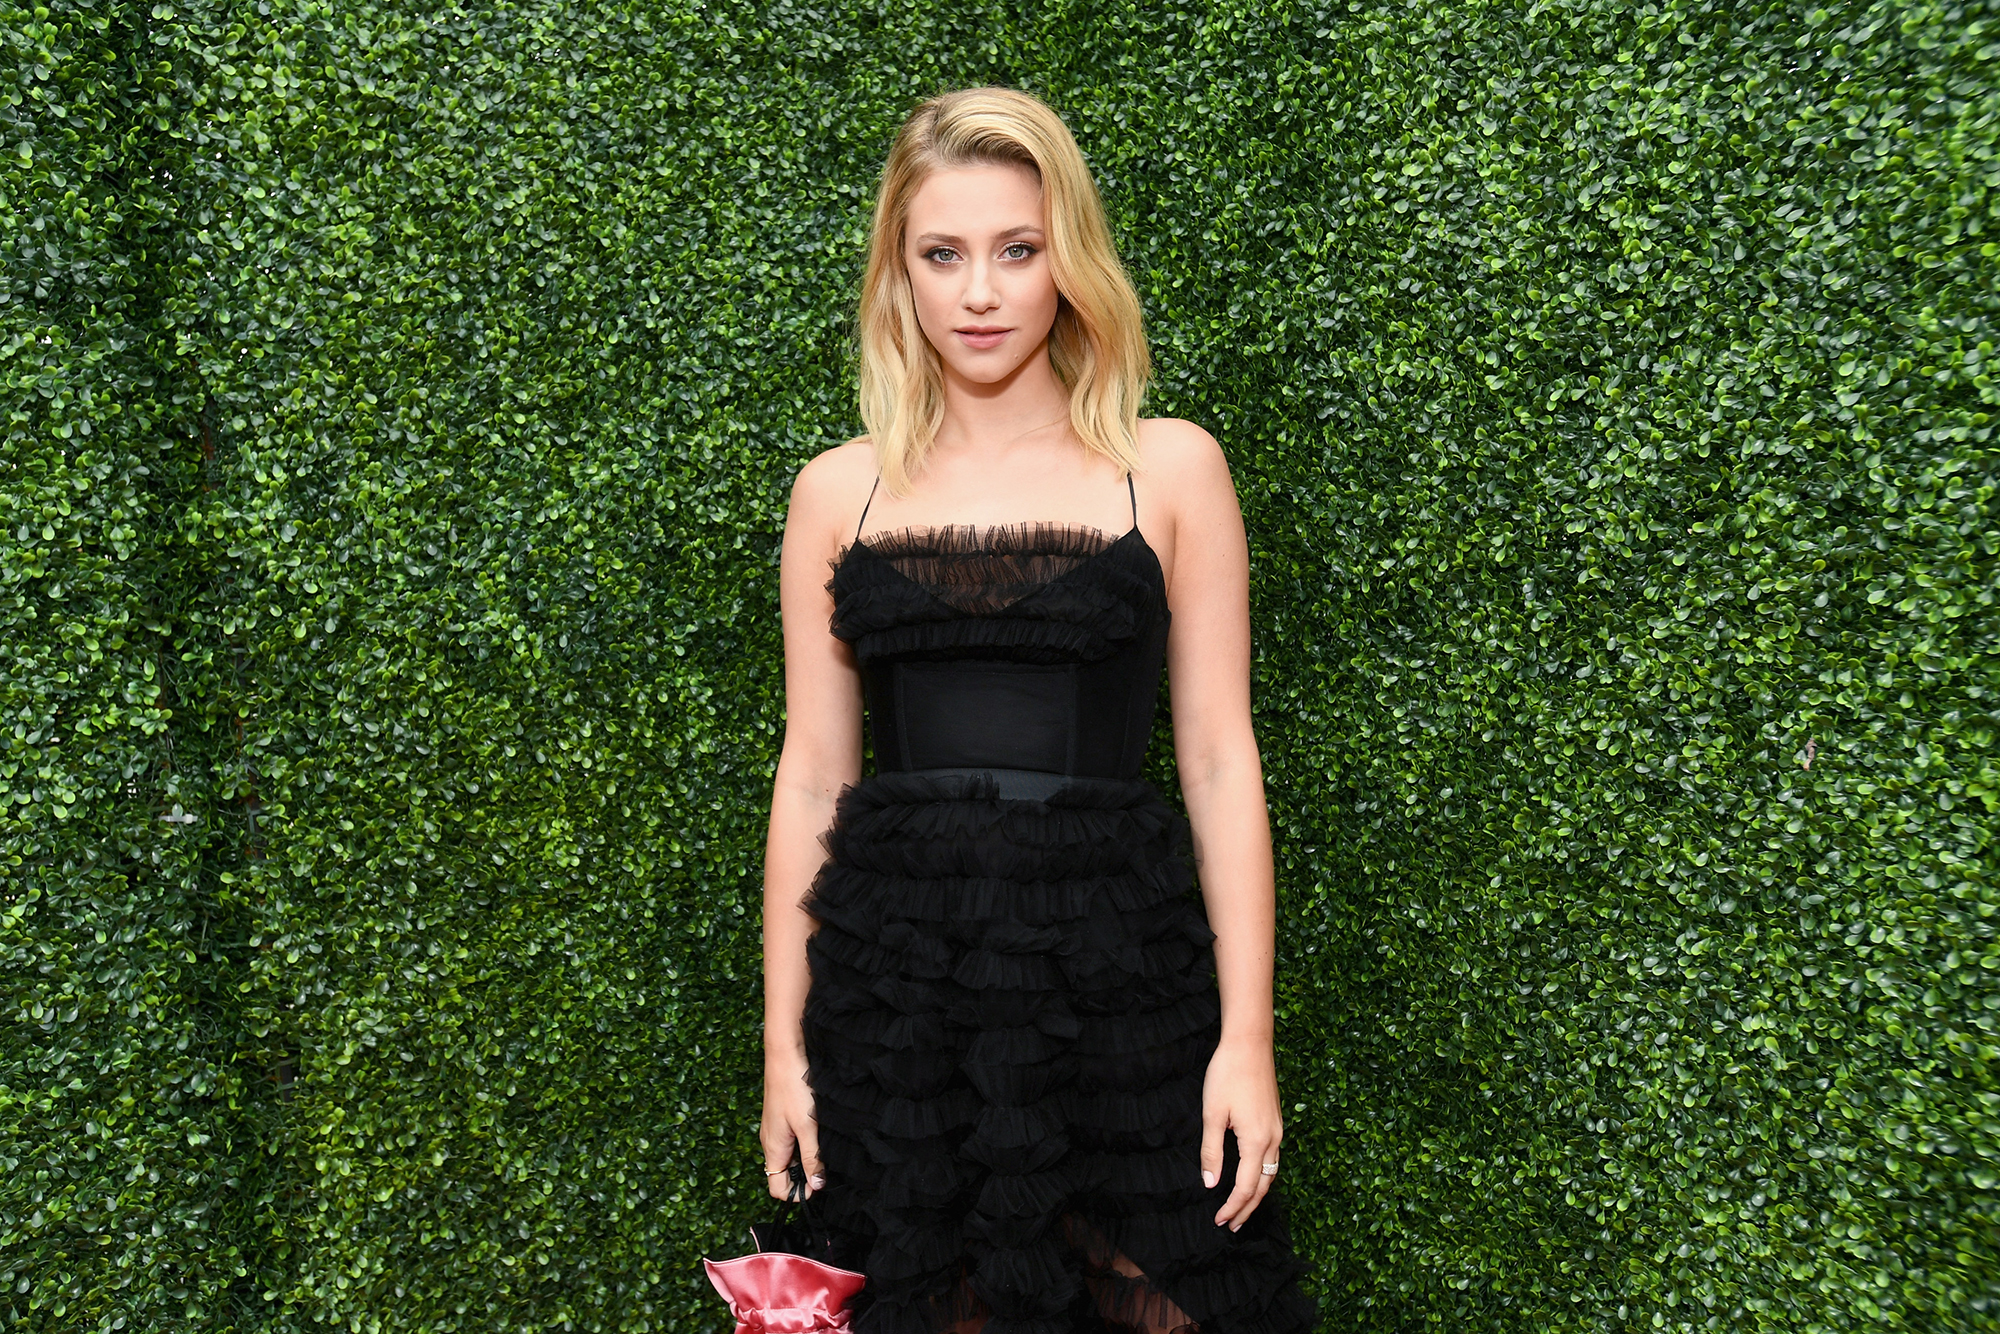 "Lili Reinhart stars who took social media break - 96 Normal 0 false false false EN-US X-NONE X-NONE /* Style Definitions */ table. MsoNormalTable {mso-style-name:""Table Normal""; mso-tstyle-rowband-size:0; mso-tstyle-colband-size:0; mso-style-noshow:yes; mso-style-priority:99; mso-style-parent:""""; mso-padding-alt:0in 5.4pt 0in 5.4pt; mso-para-margin:0in; mso-para-margin-bottom:.0001pt; mso-pagination:widow-orphan; font-size:12.0pt; font-family:""Calibri"",sans-serif; mso-ascii-font-family:Calibri; mso-ascii-theme-font:minor-latin; mso-hansi-font-family:Calibri; mso-hansi-theme-font:minor-latin;} The Riverdale actress was sick of getting hate from ""online trolls,"" so she kissed Twitter goodbye."